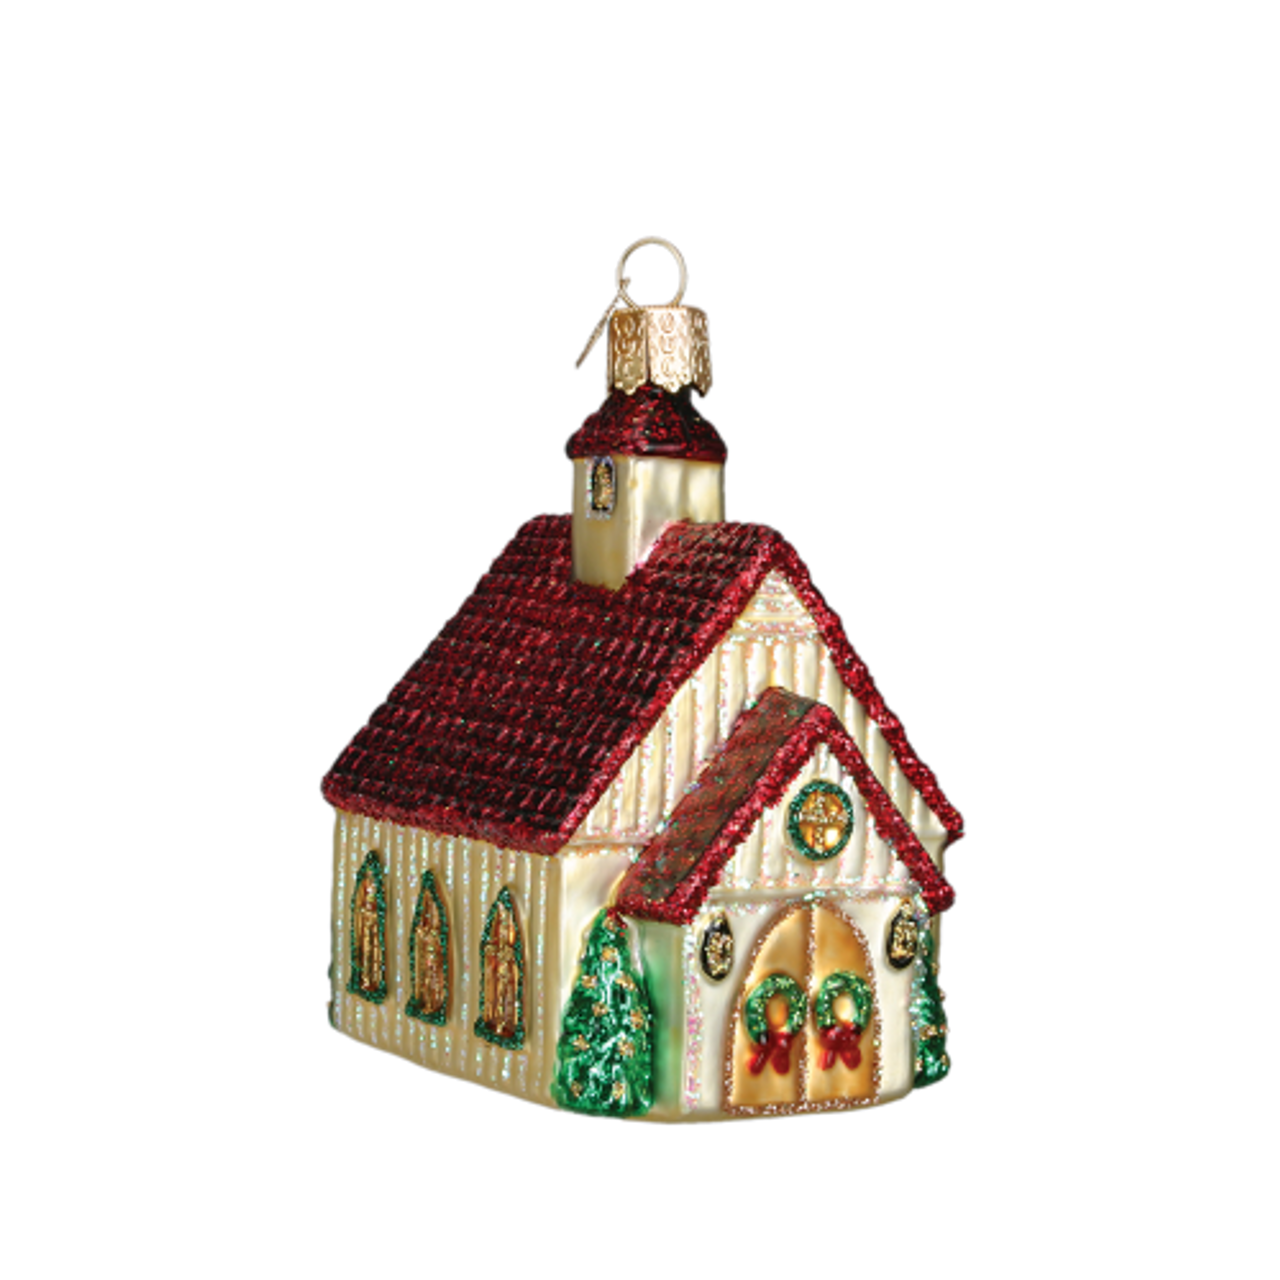 Old World Christmas Country Church Snow Ornament 20095